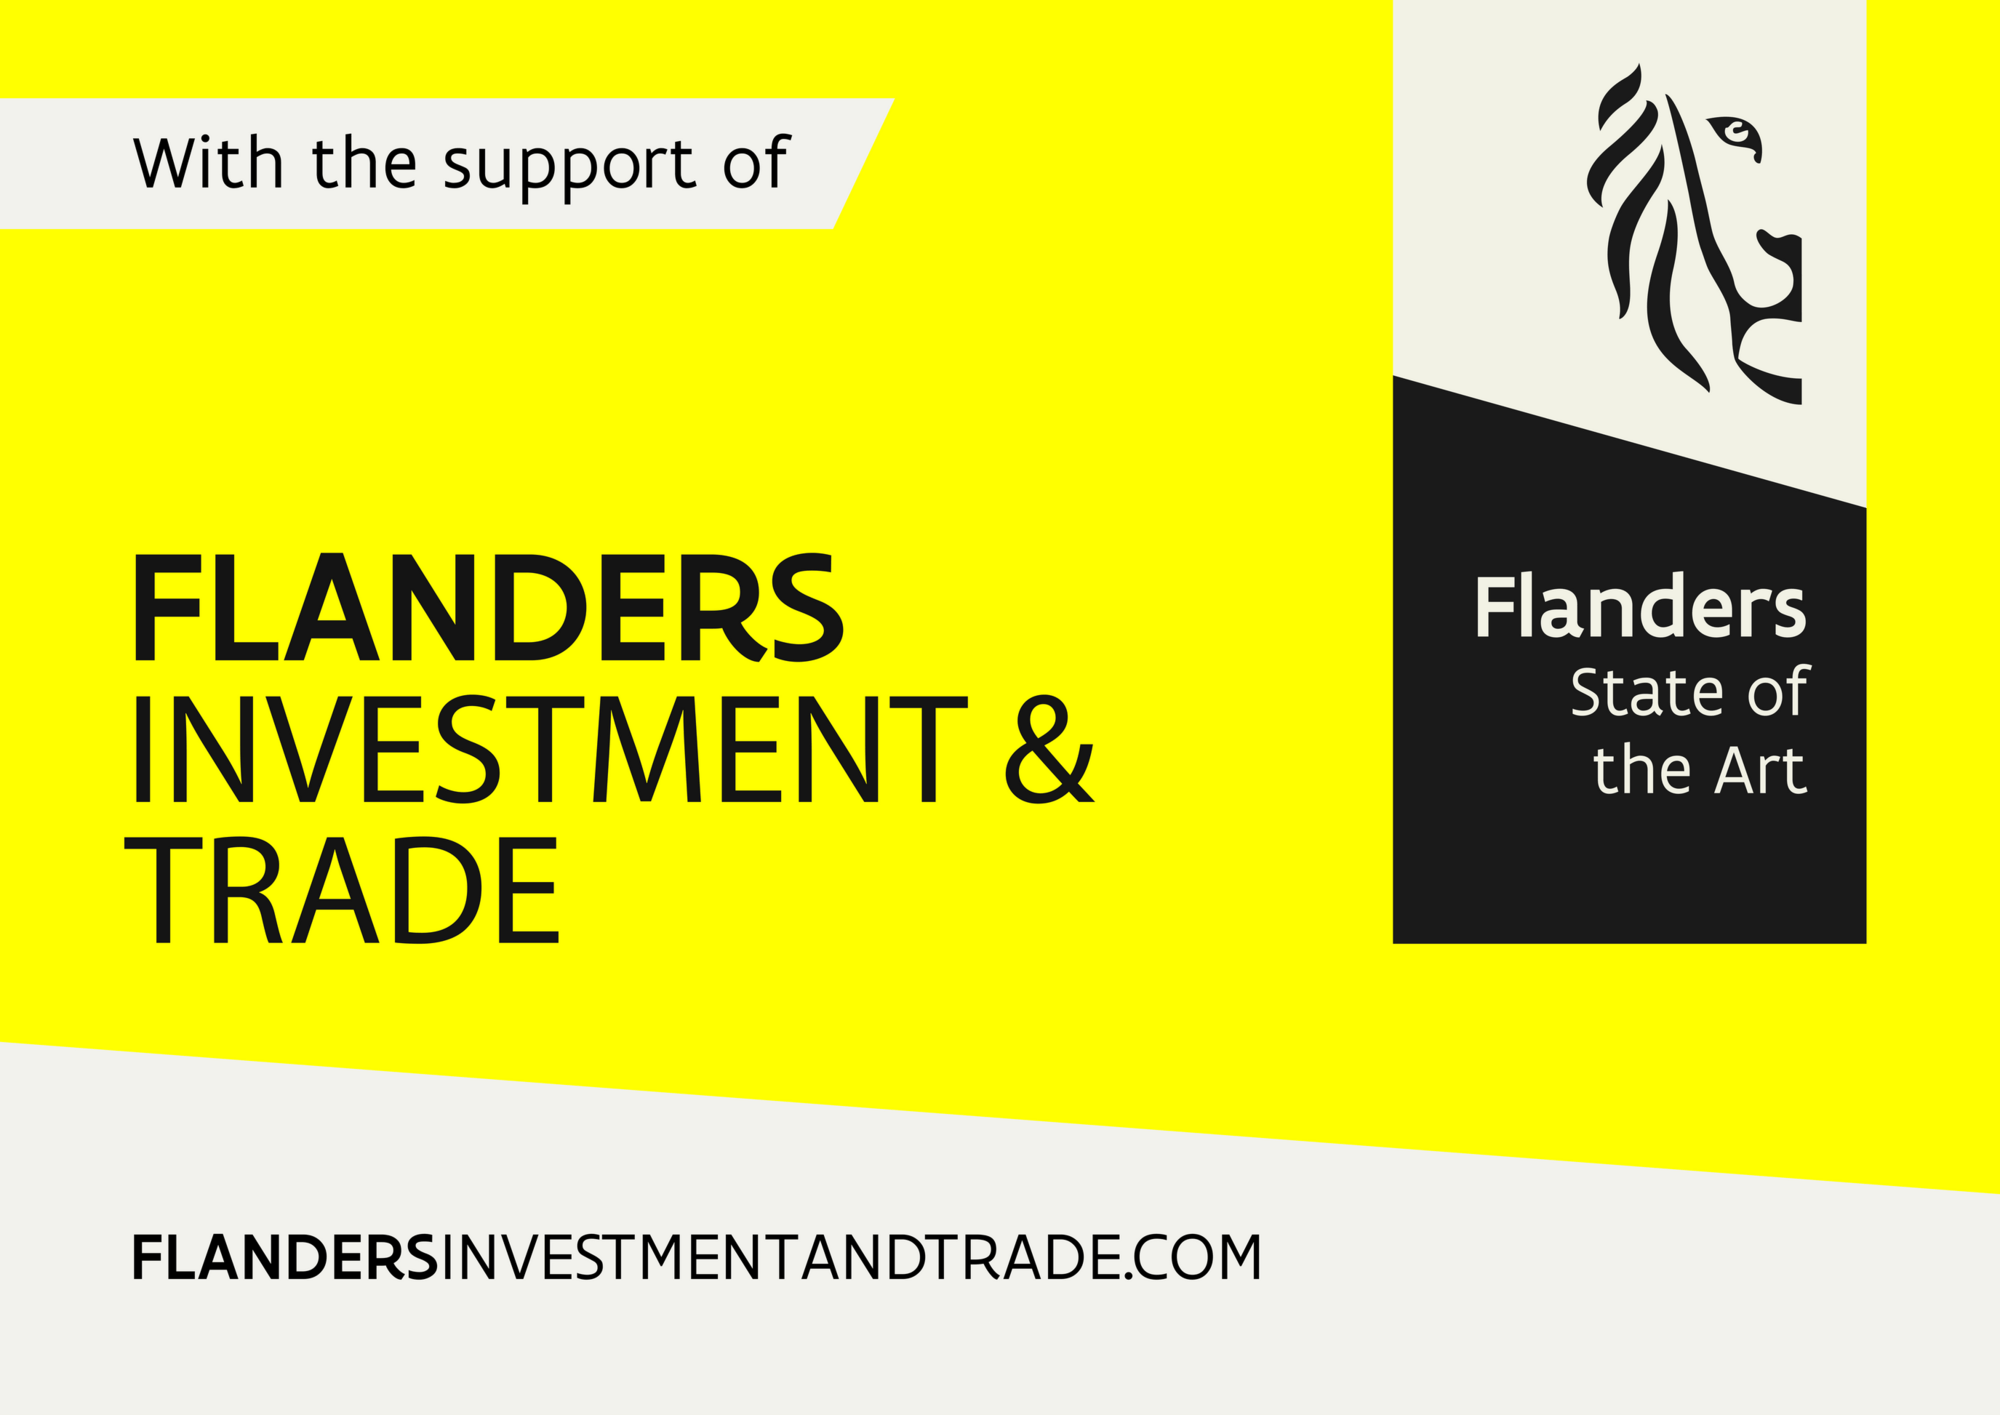 This website has been financed with the support of Flanders Investment & Trade